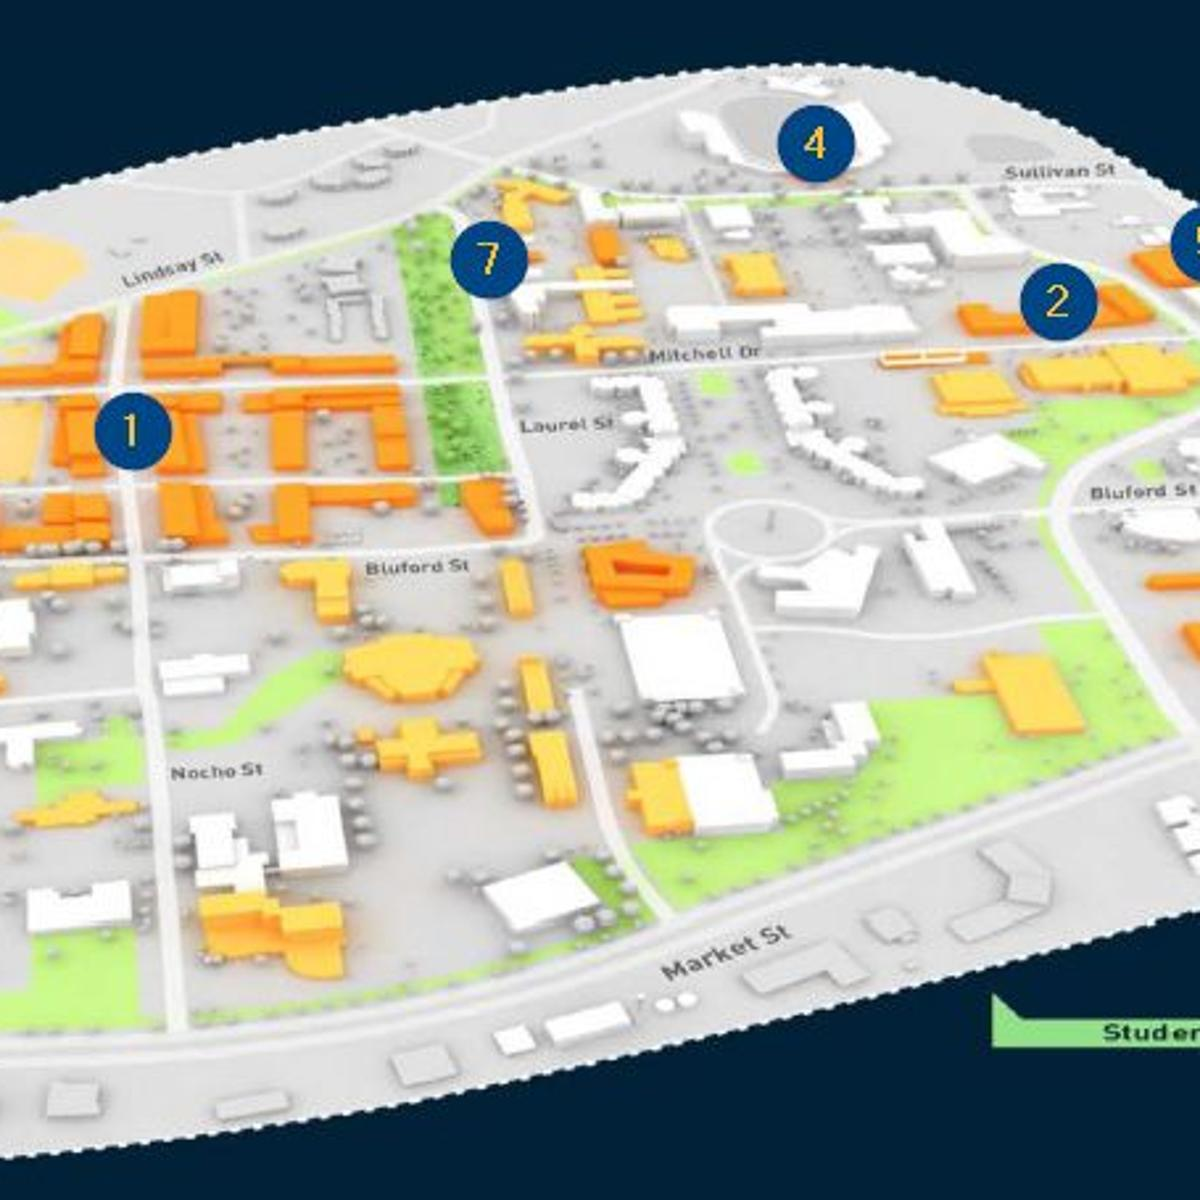 nc a t campus map The Syllabus Refreshing The N C A T Master Plan Journalnow Com nc a t campus map